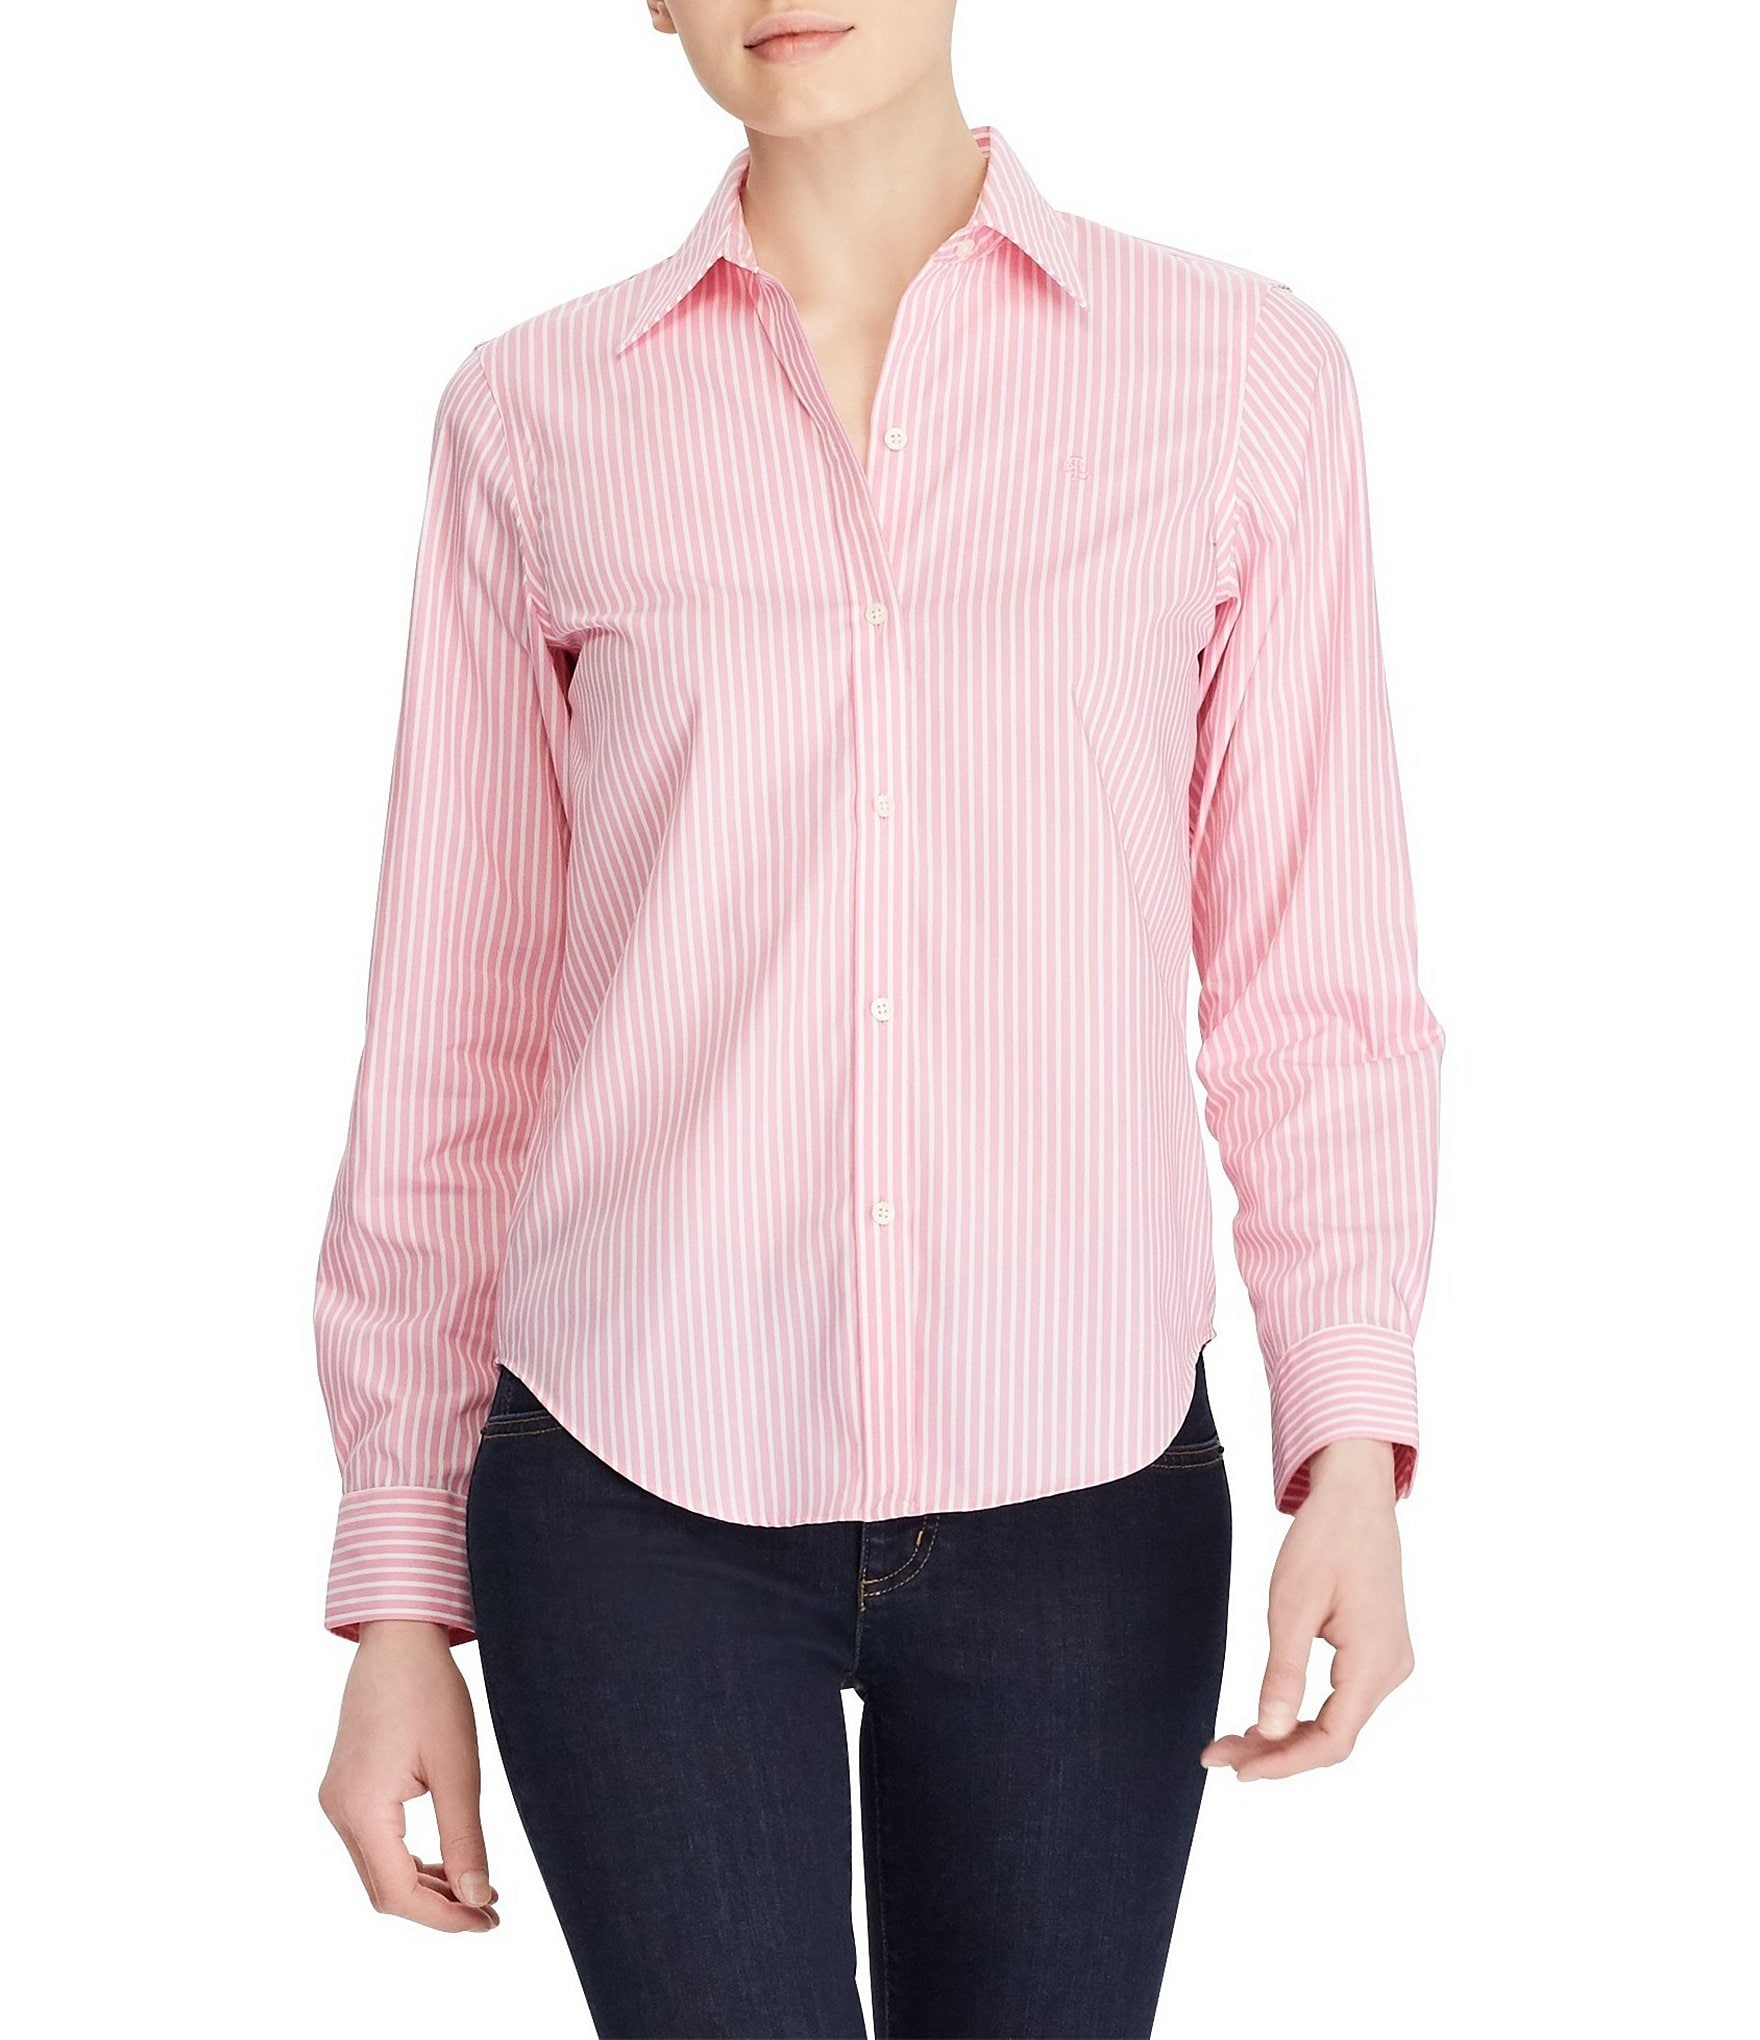 Dillards women ralph lauren sale womens ralph lauren polo for White non iron dress shirts